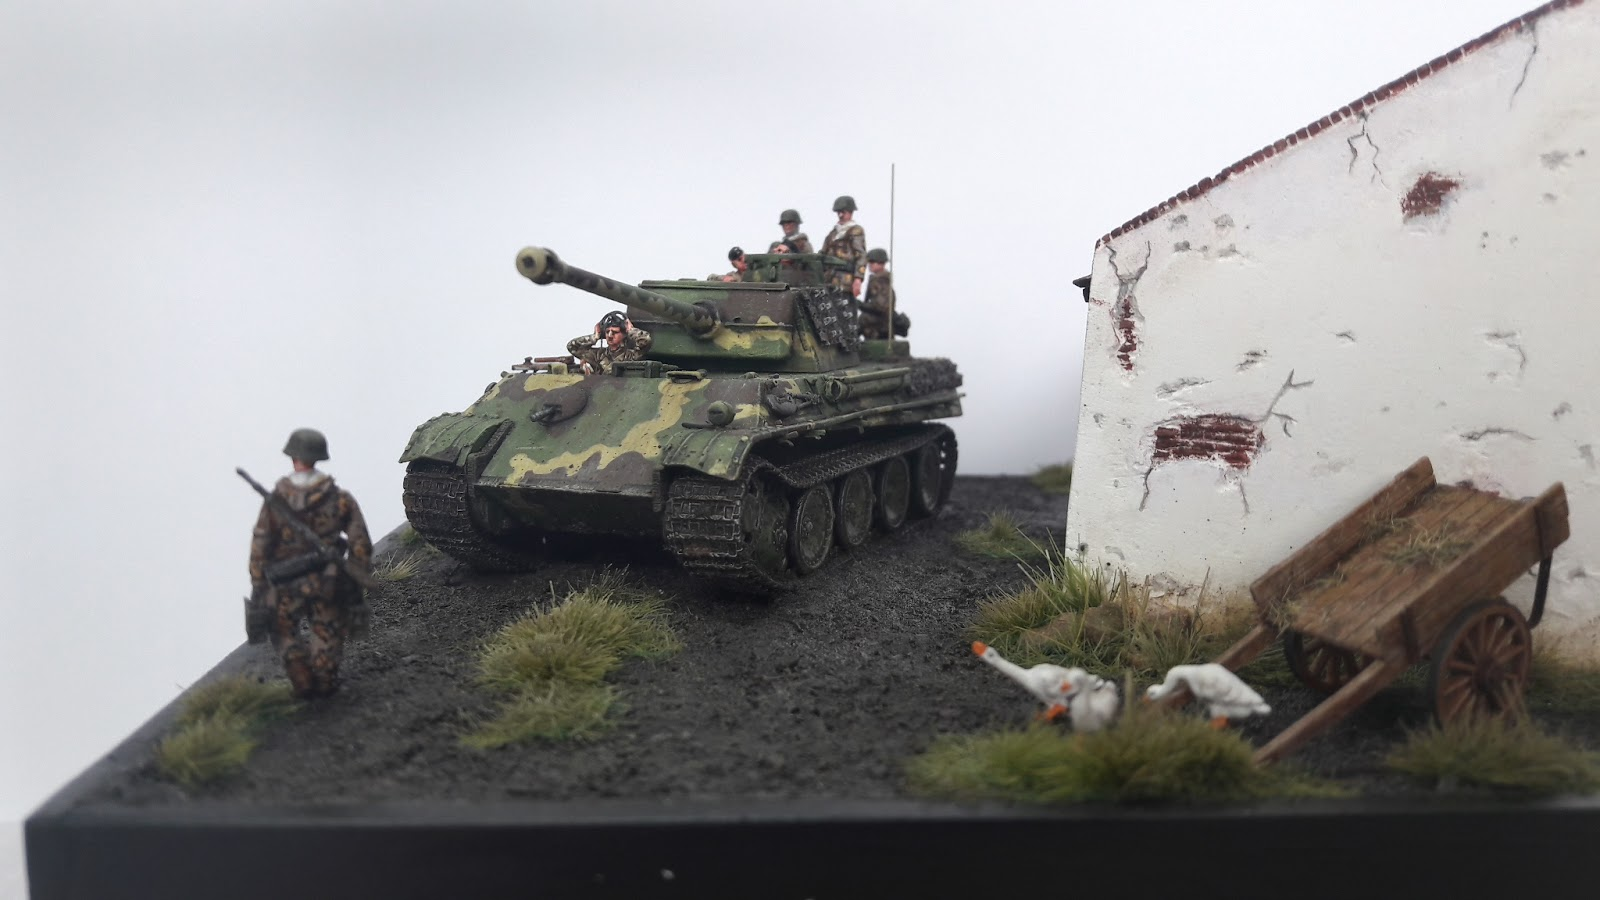 Hongrie 1945 diorama (Panther Ausf.G Late & Zundapp KS 750) - Page 7 20190610_122442_Richtone%2528HDR%2529